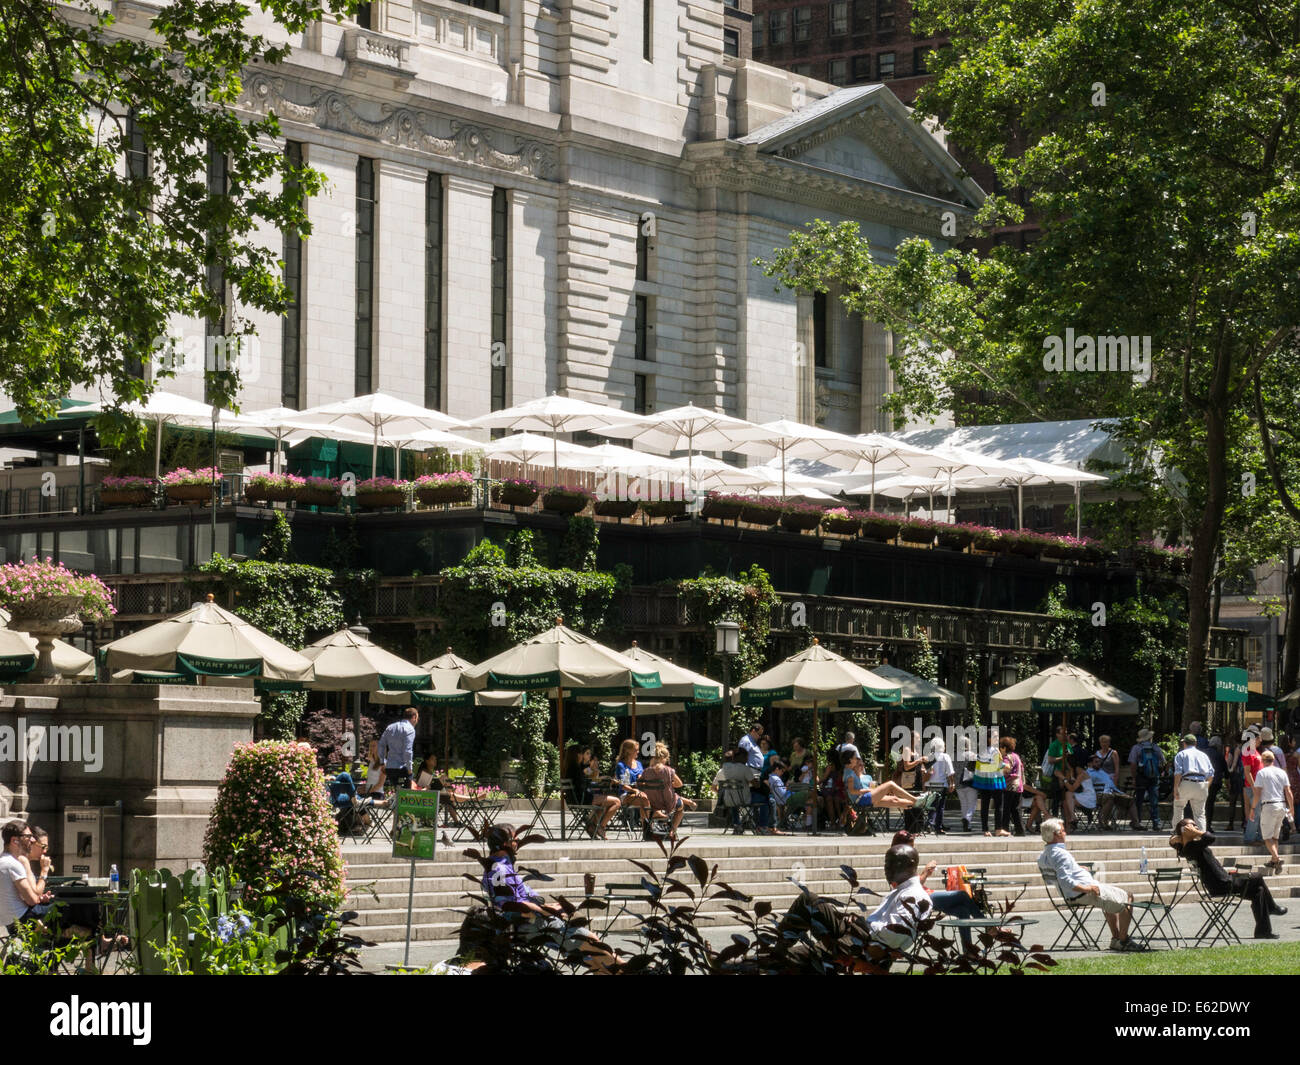 Bryant Park Grill Restaurant And Umbrellas In Bryant Park